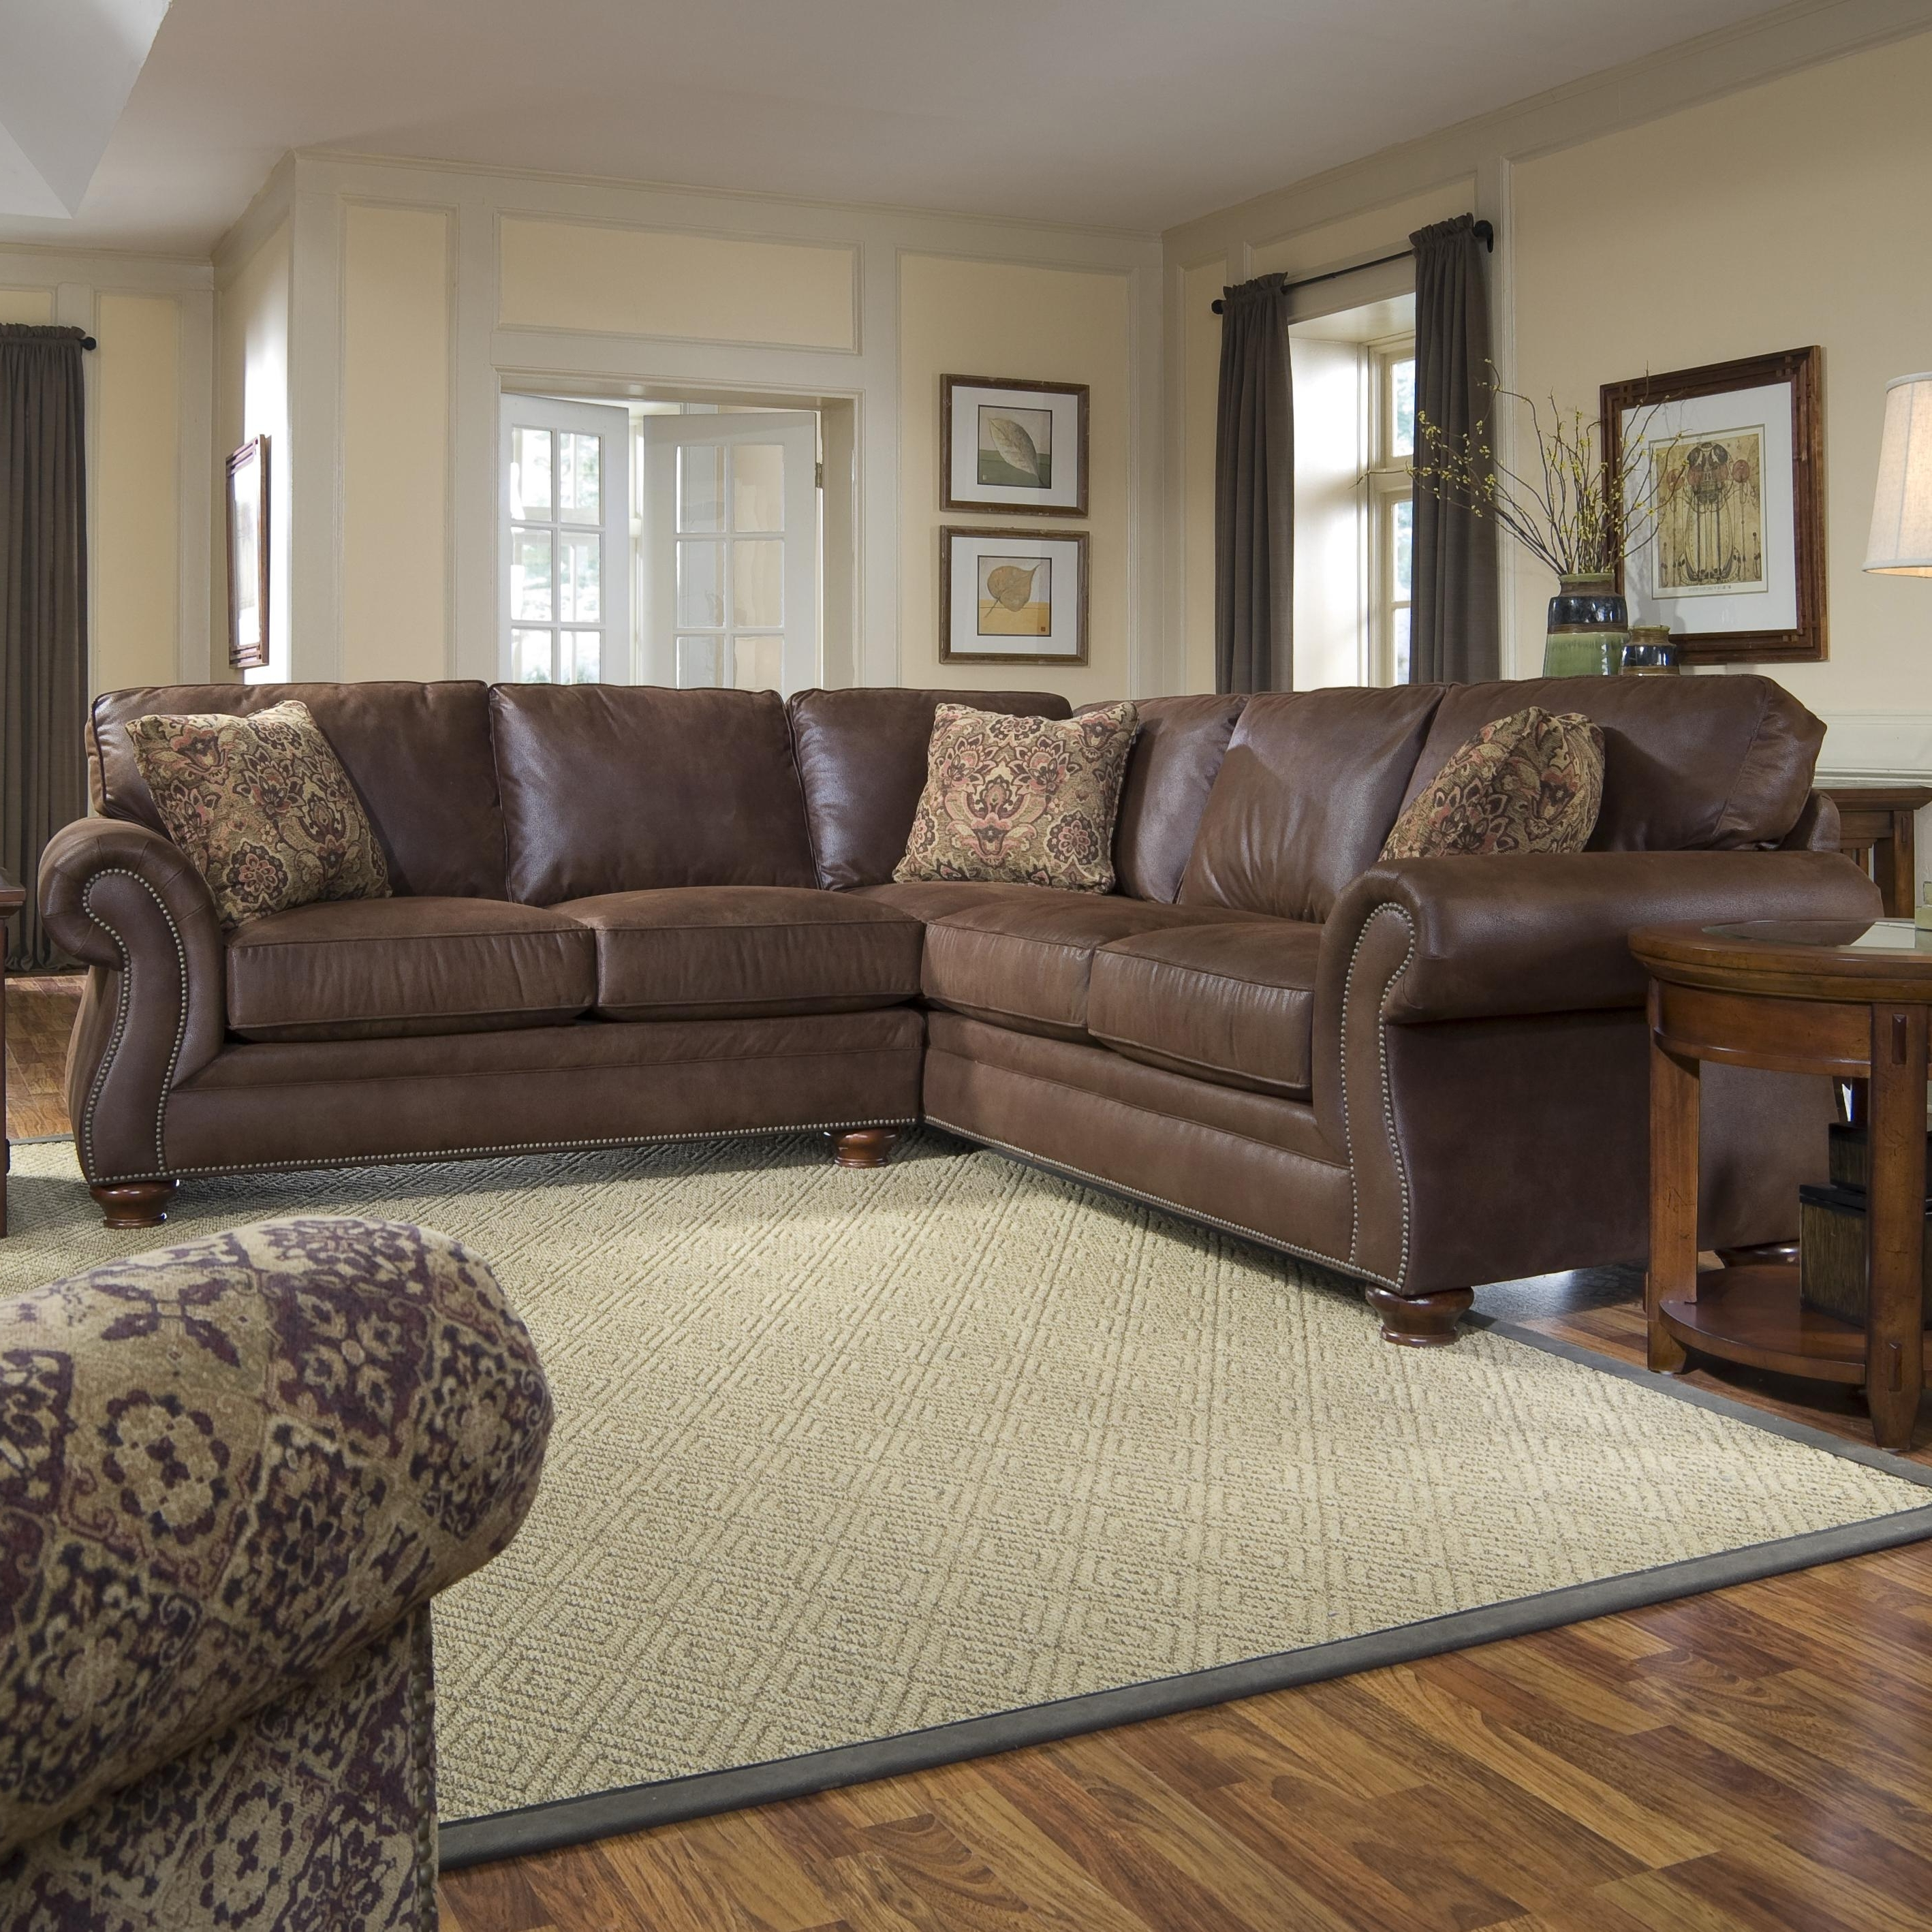 Most Up To Date Broyhill Sectional Sofas Intended For Broyhill Furniture Laramie 3 Piece Sectional Sofa (View 15 of 20)